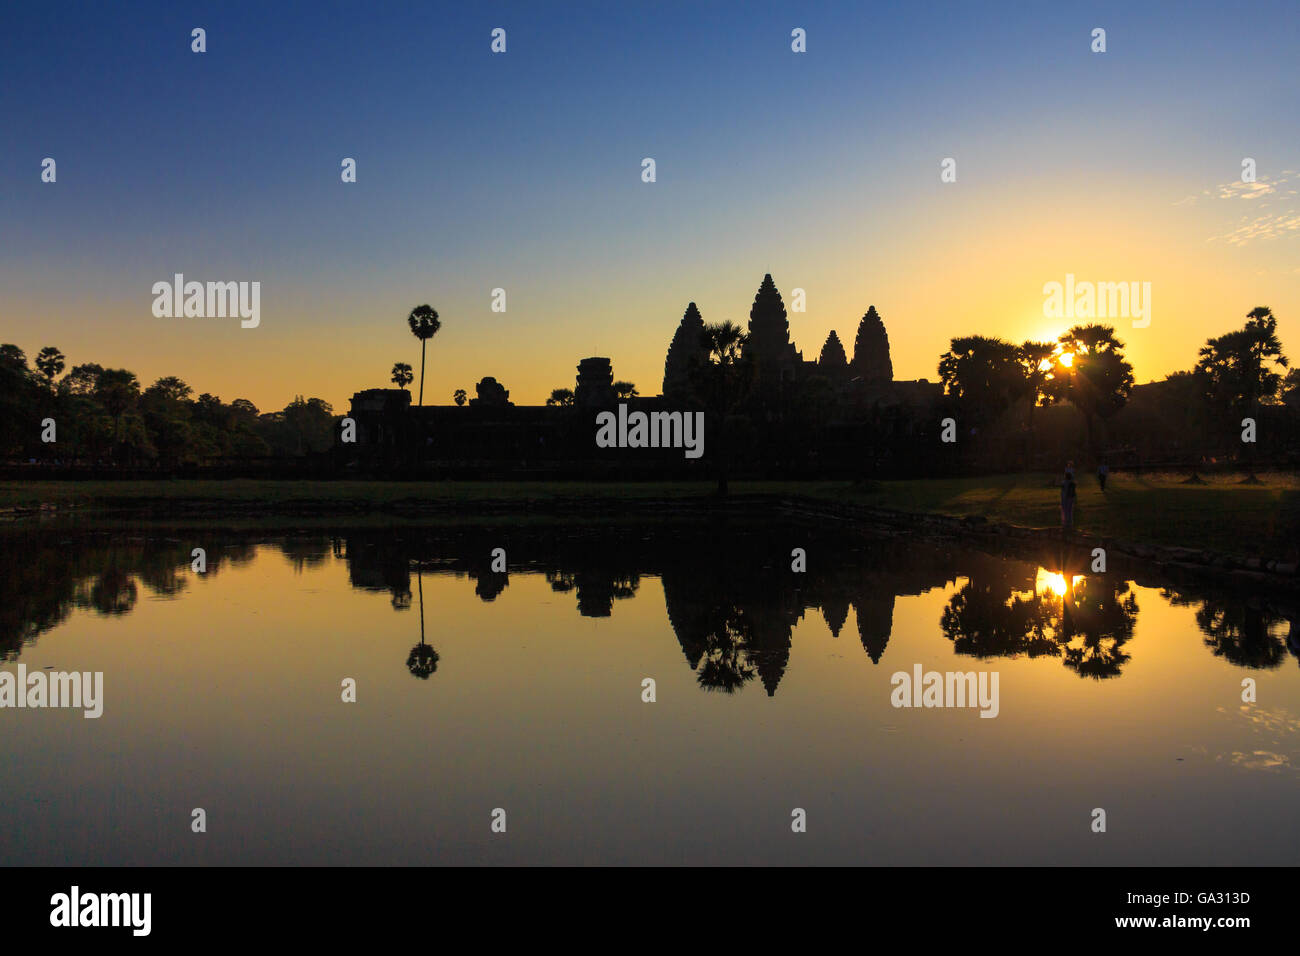 Sunrise at Angkor Wat in Siem Reap, Cambodia, which is a world heritage - Stock Image